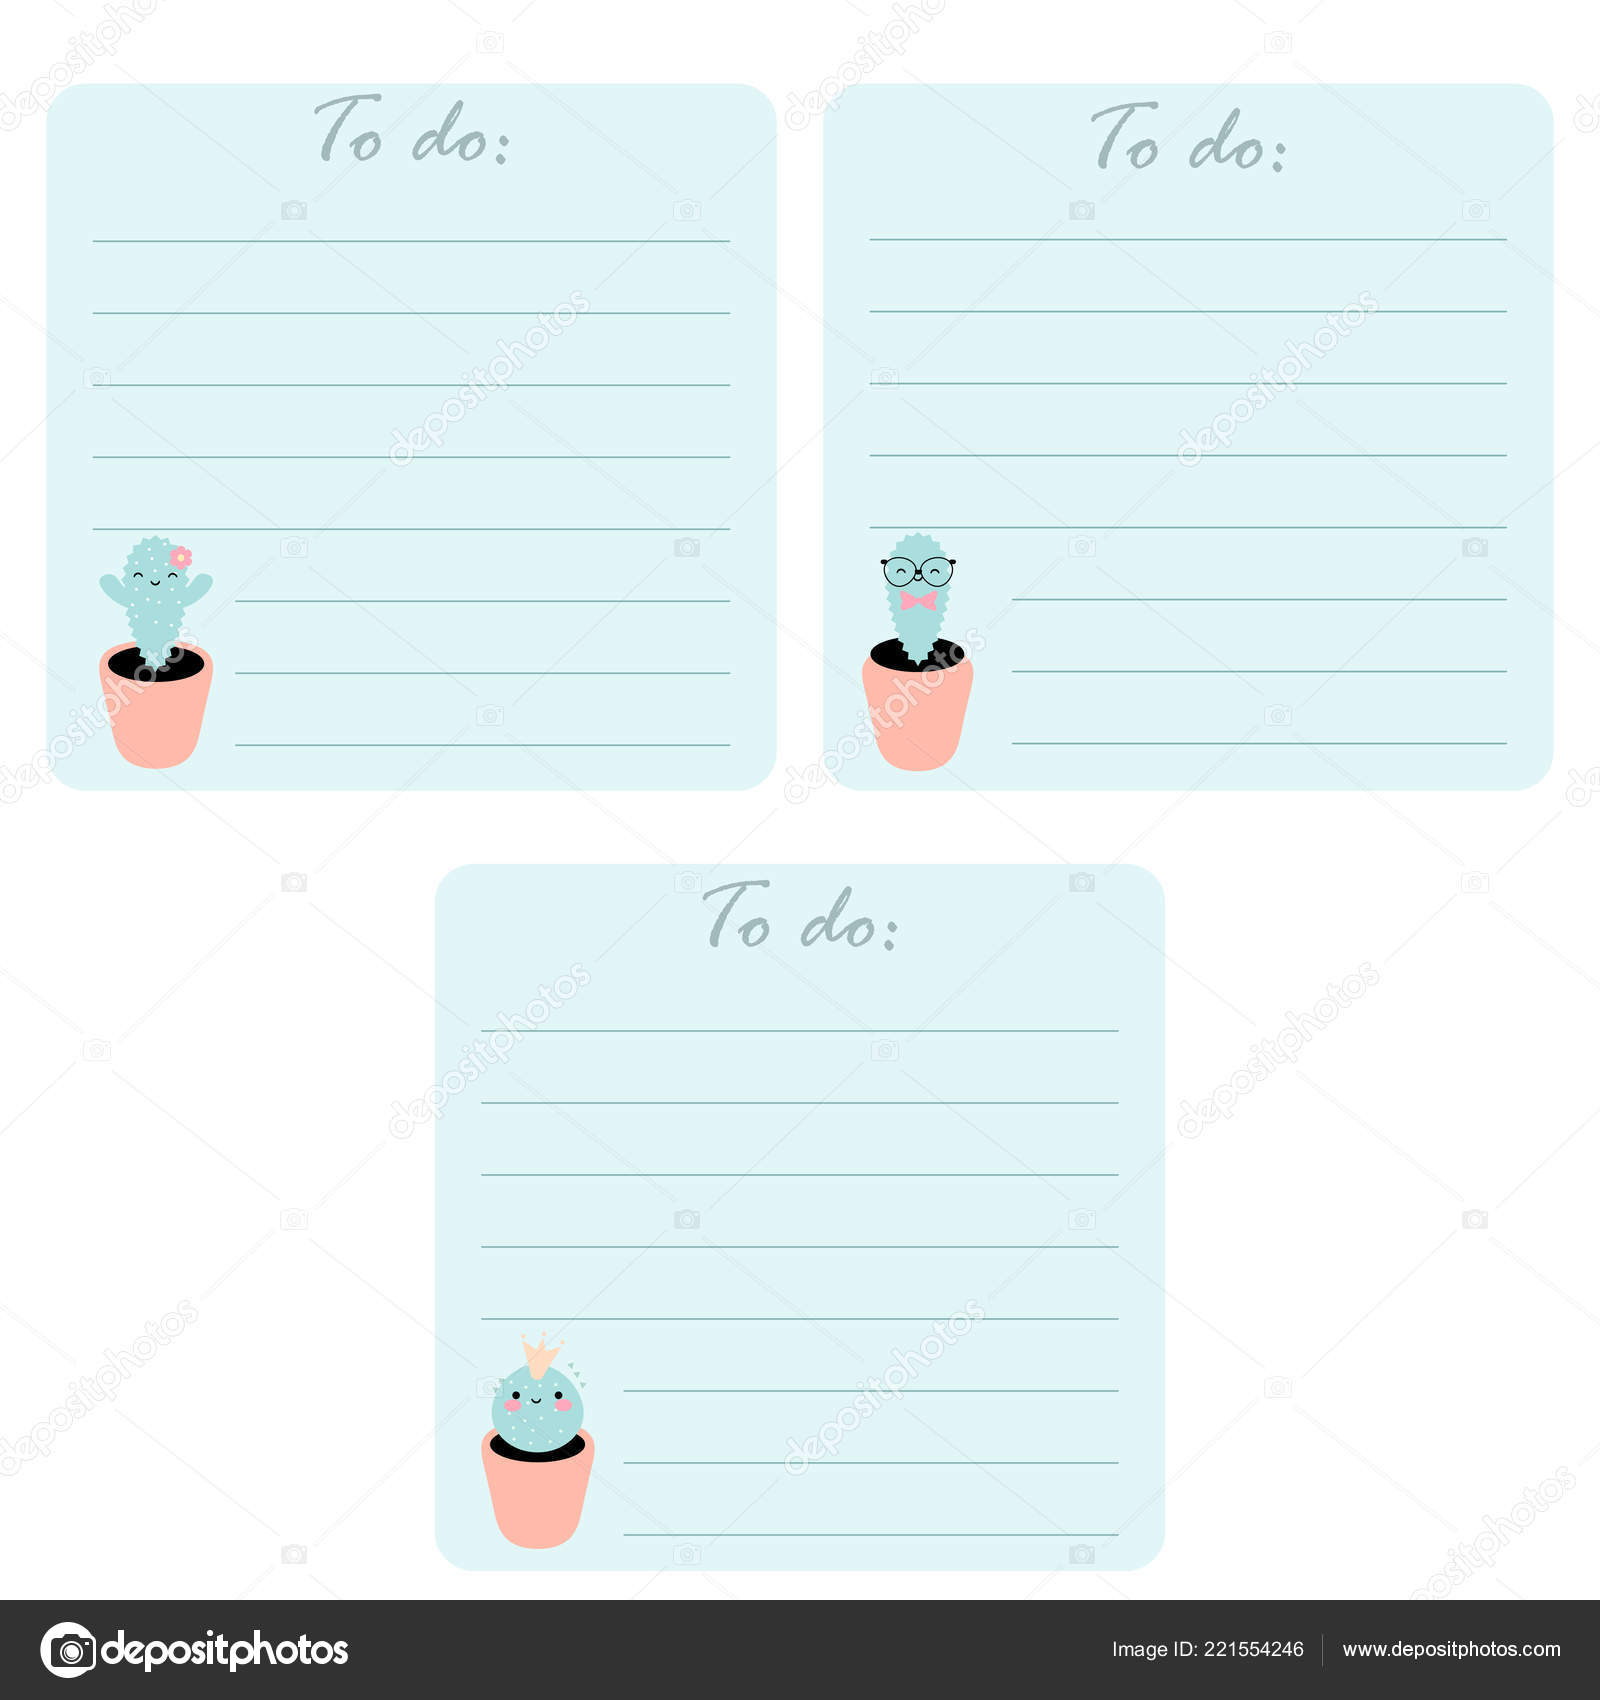 image about Printable Lists named Cactus printable template Fixed Printable Lists Lovable Kawaii